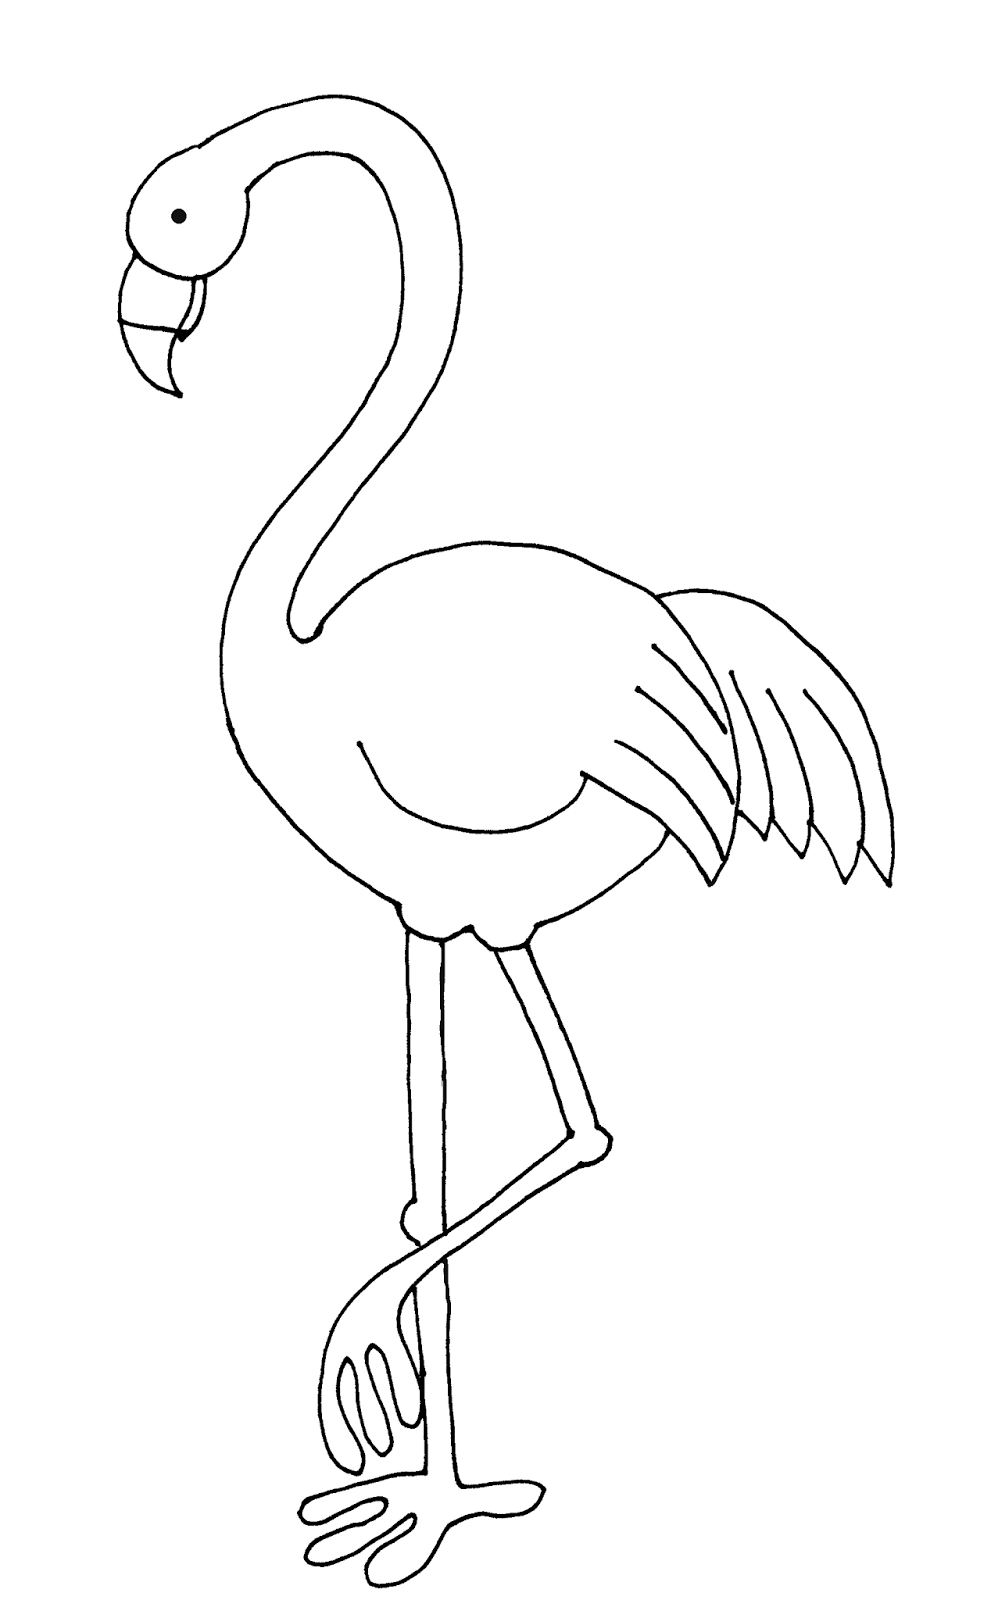 Flamigo Come On Everybody Knows At Least One Person With A Pink Flamigo In Their Yard Digital Stamps Free Flamingo Coloring Page Unicorn Coloring Pages